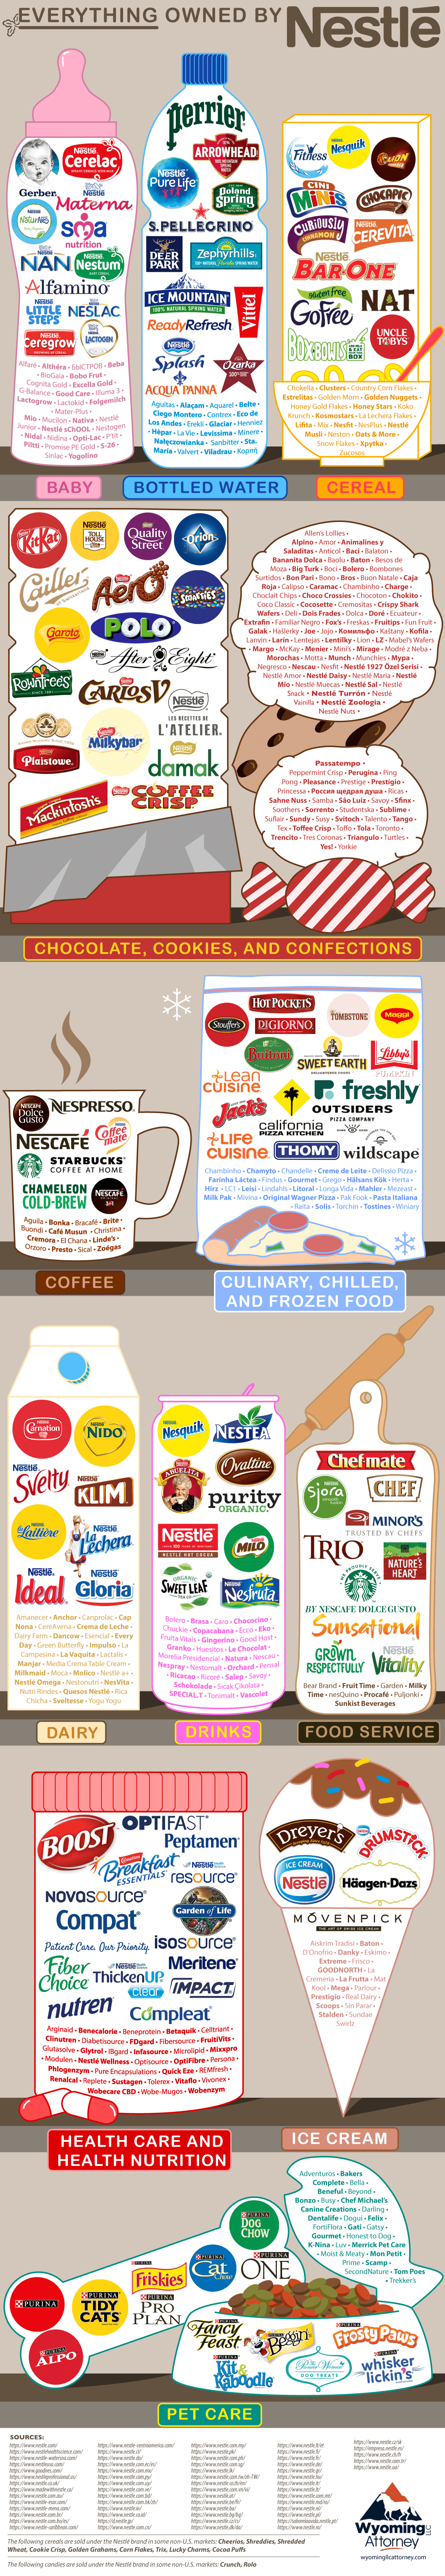 What Brands Does Nestle Own?